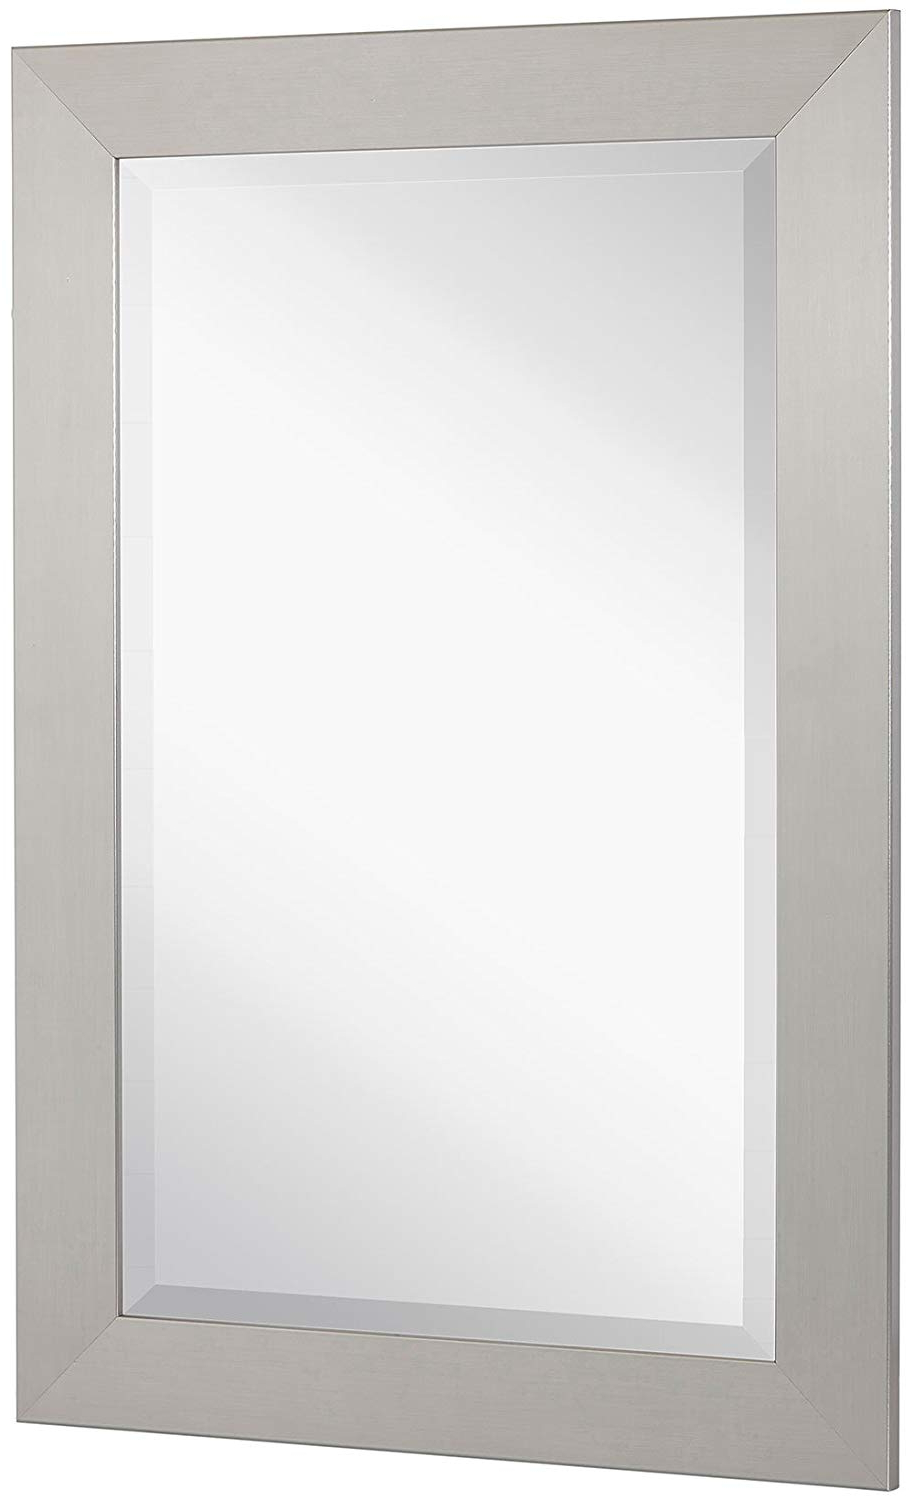 Rectangle Pewter Beveled Wall Mirrors Throughout Preferred Amazon: New Pewter Modern Metallic Look Rectangle Wall Mirror (Gallery 4 of 20)